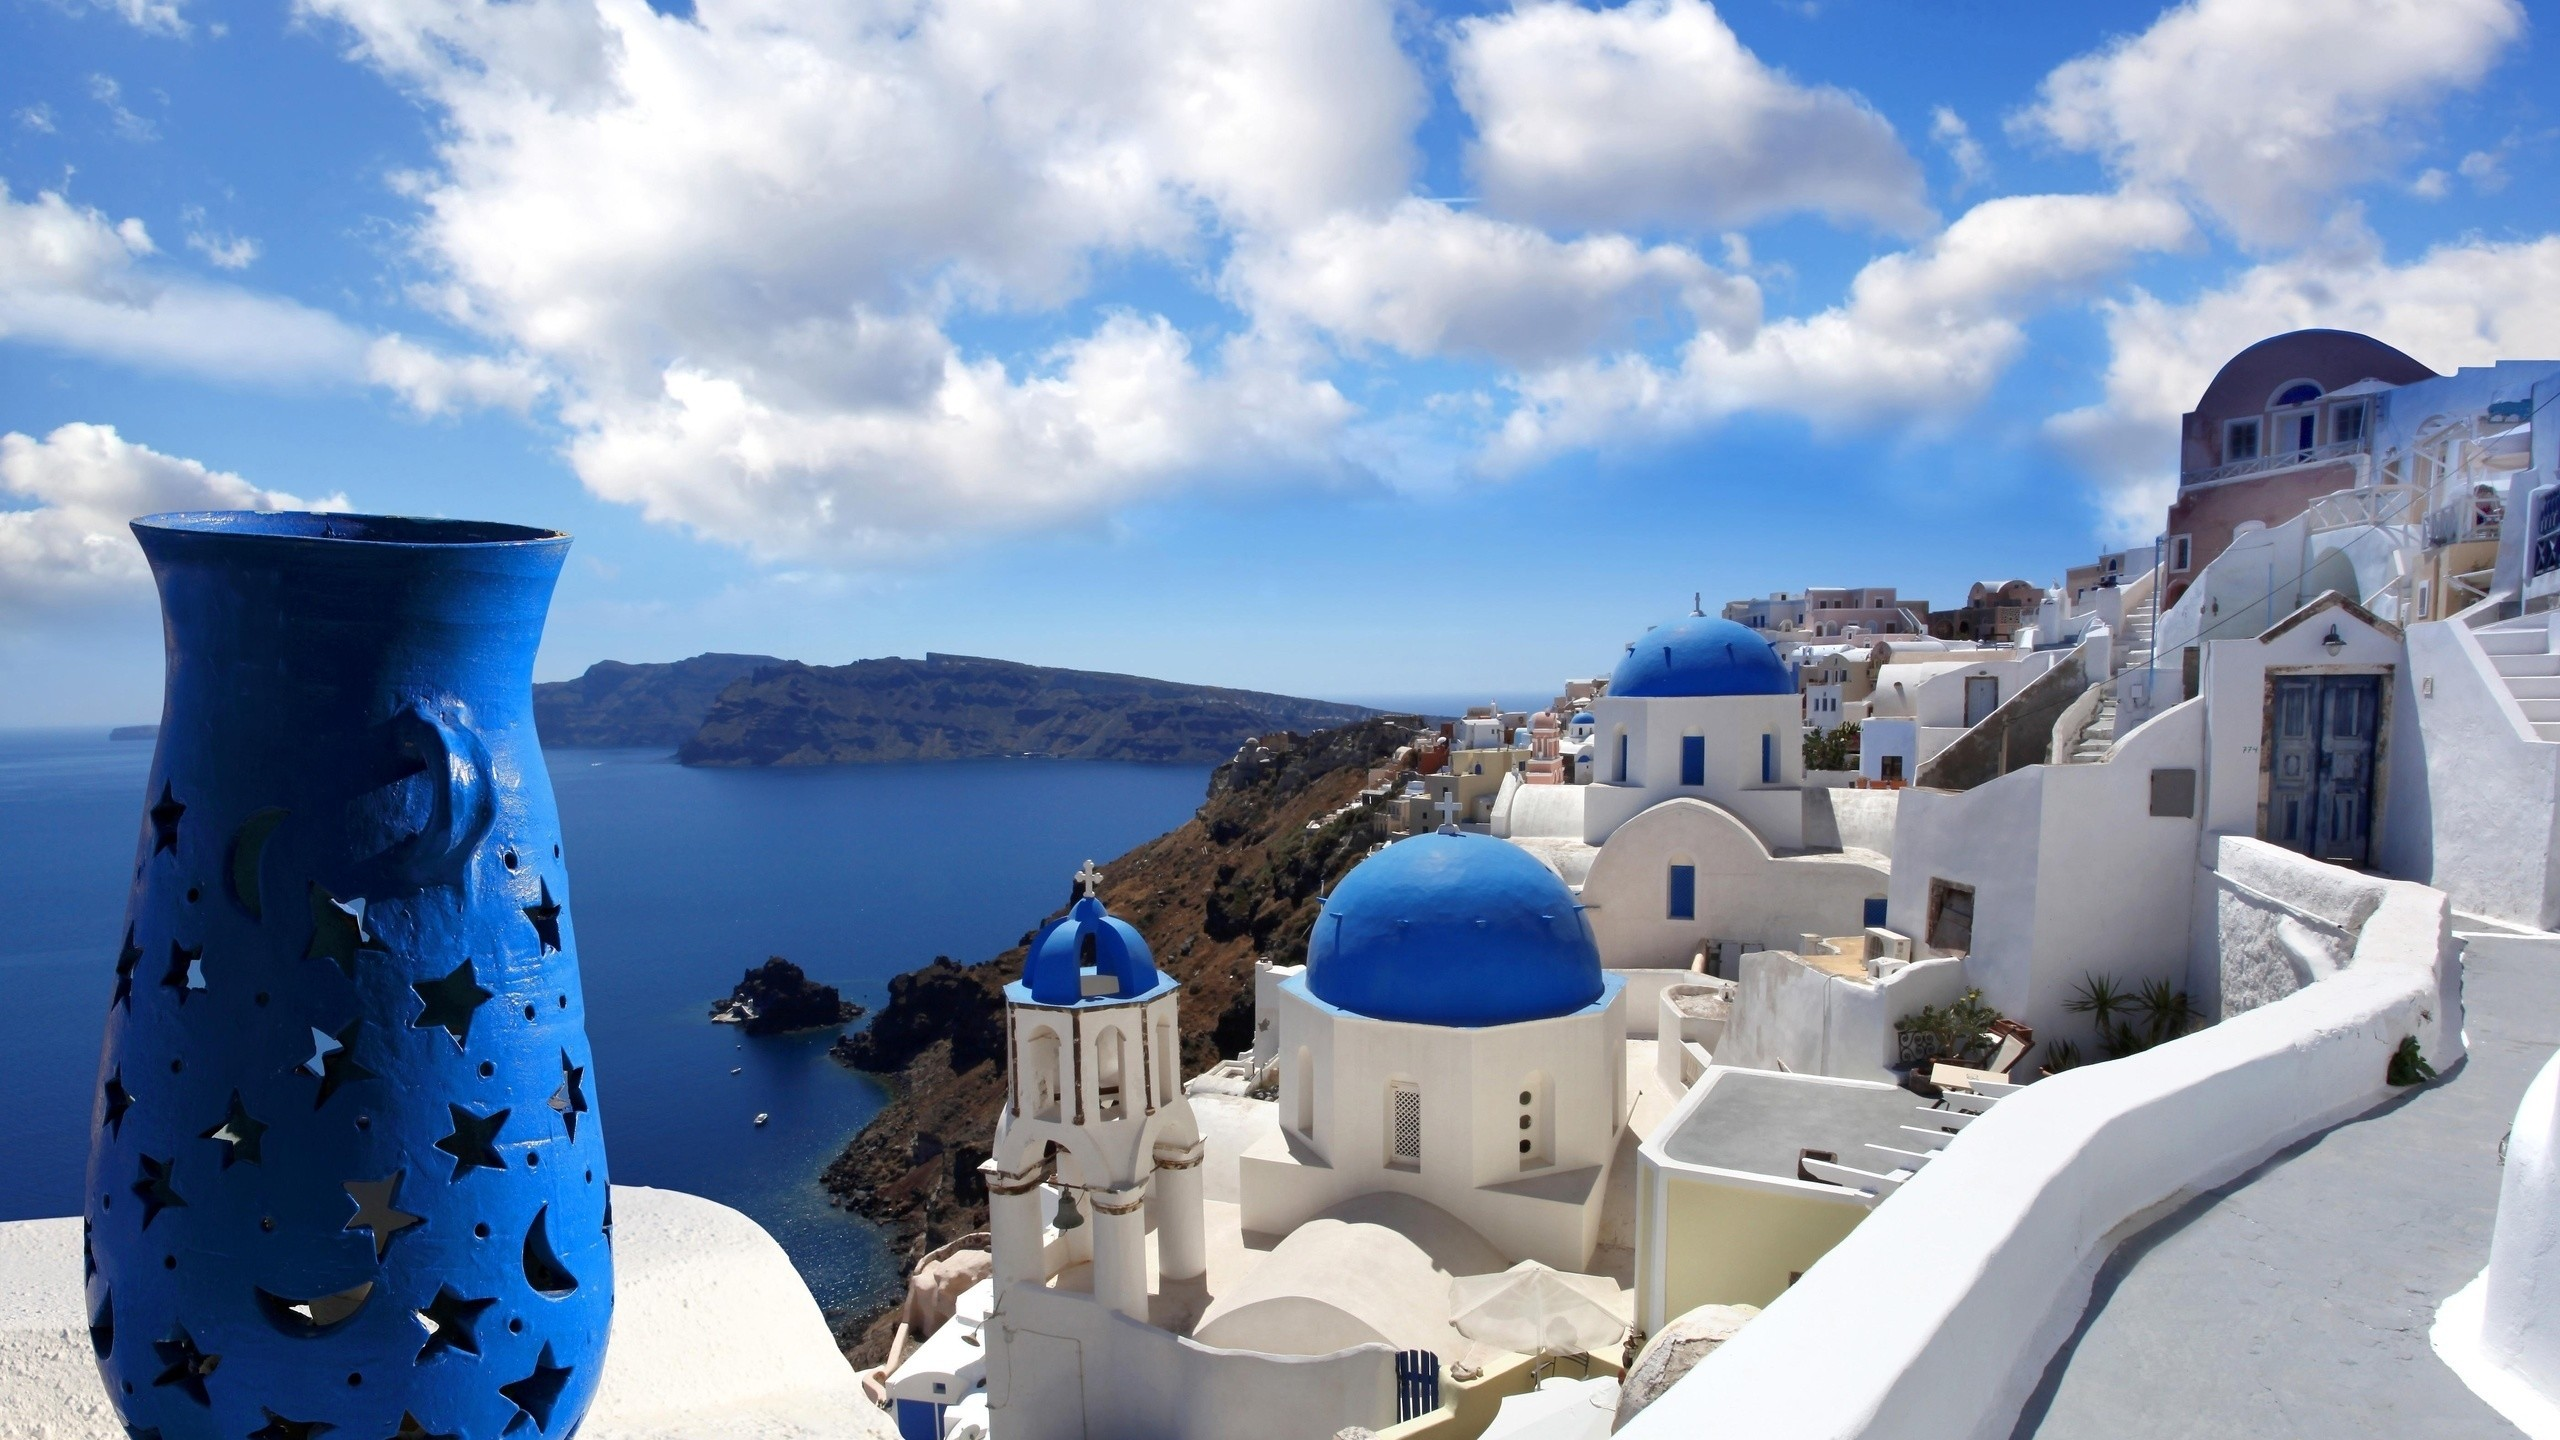 Res: 2560x1440, Category wallpaper | White staircases and Mediterranean sea view on  Santorini, Greece, full type